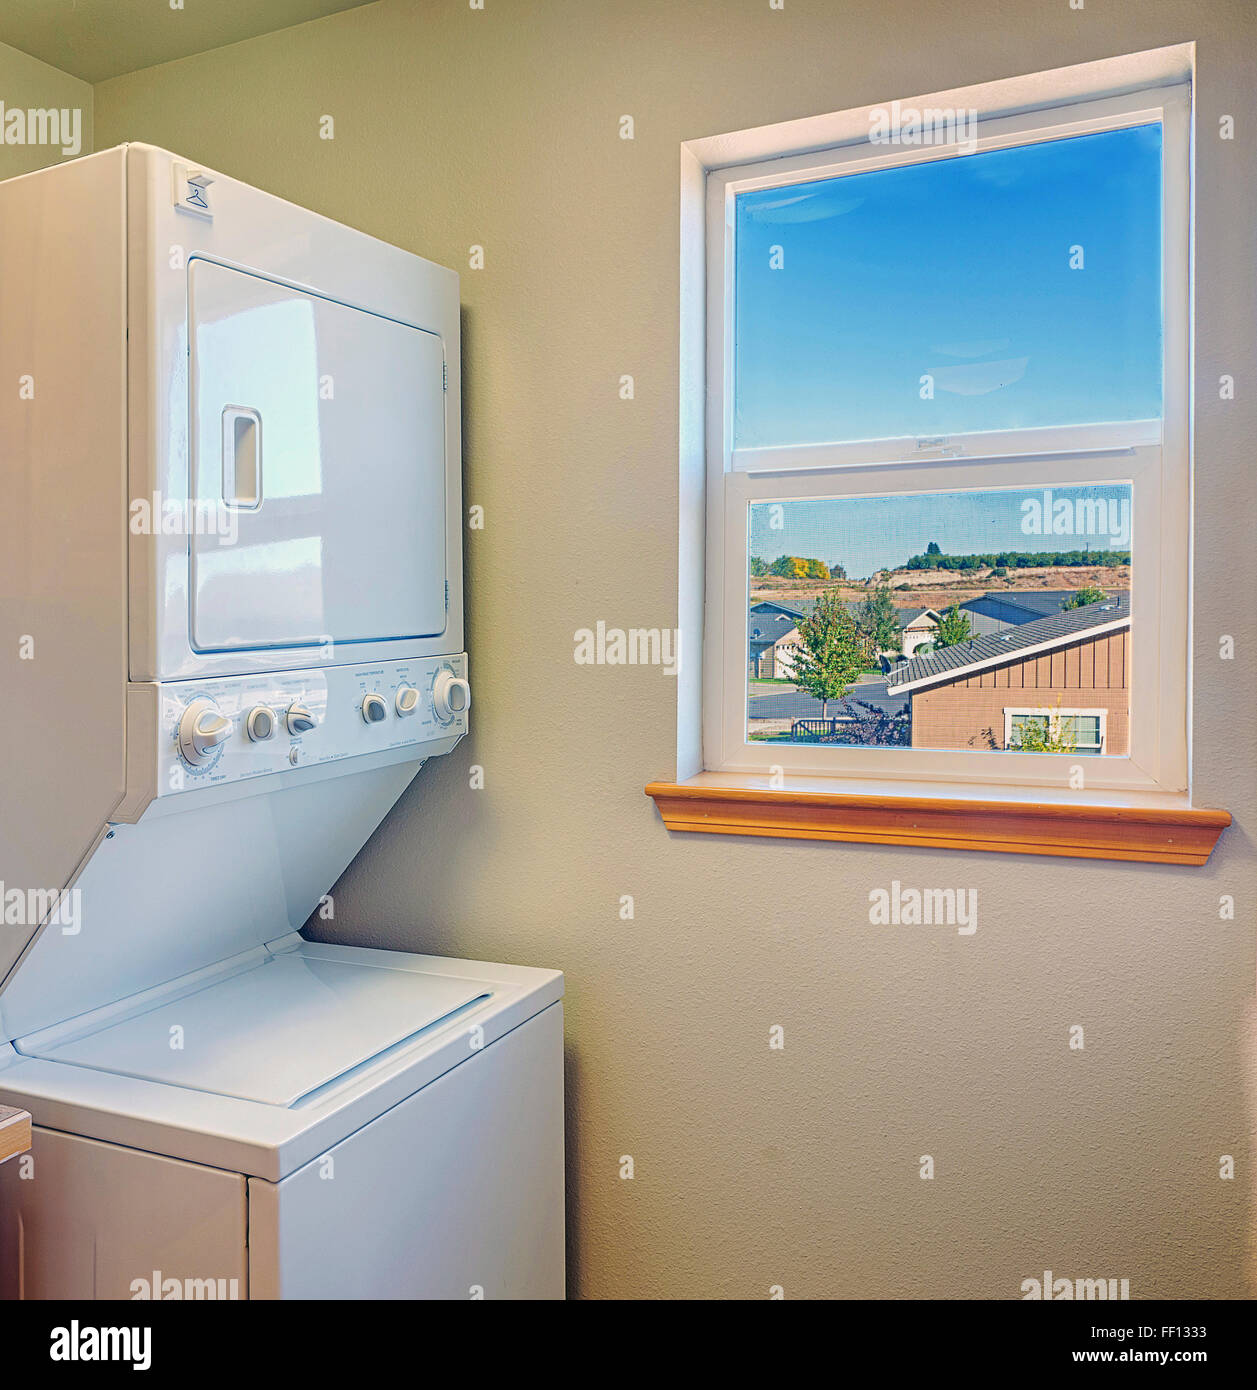 Washer and dryer with window in laundry room - Stock Image